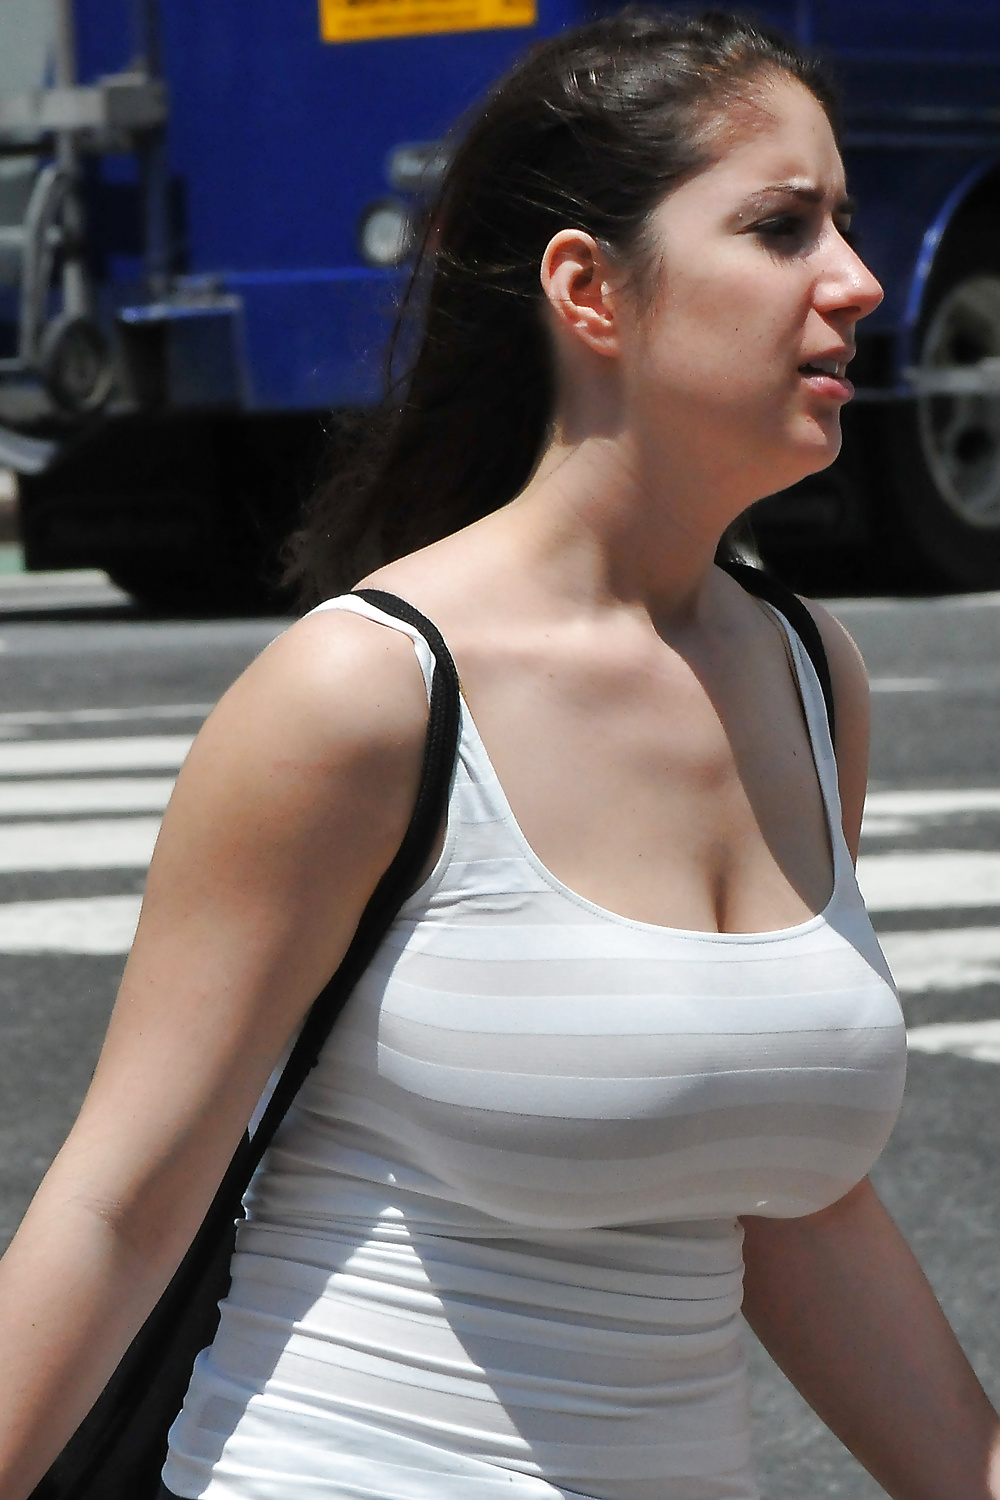 Showing boobs on facebook